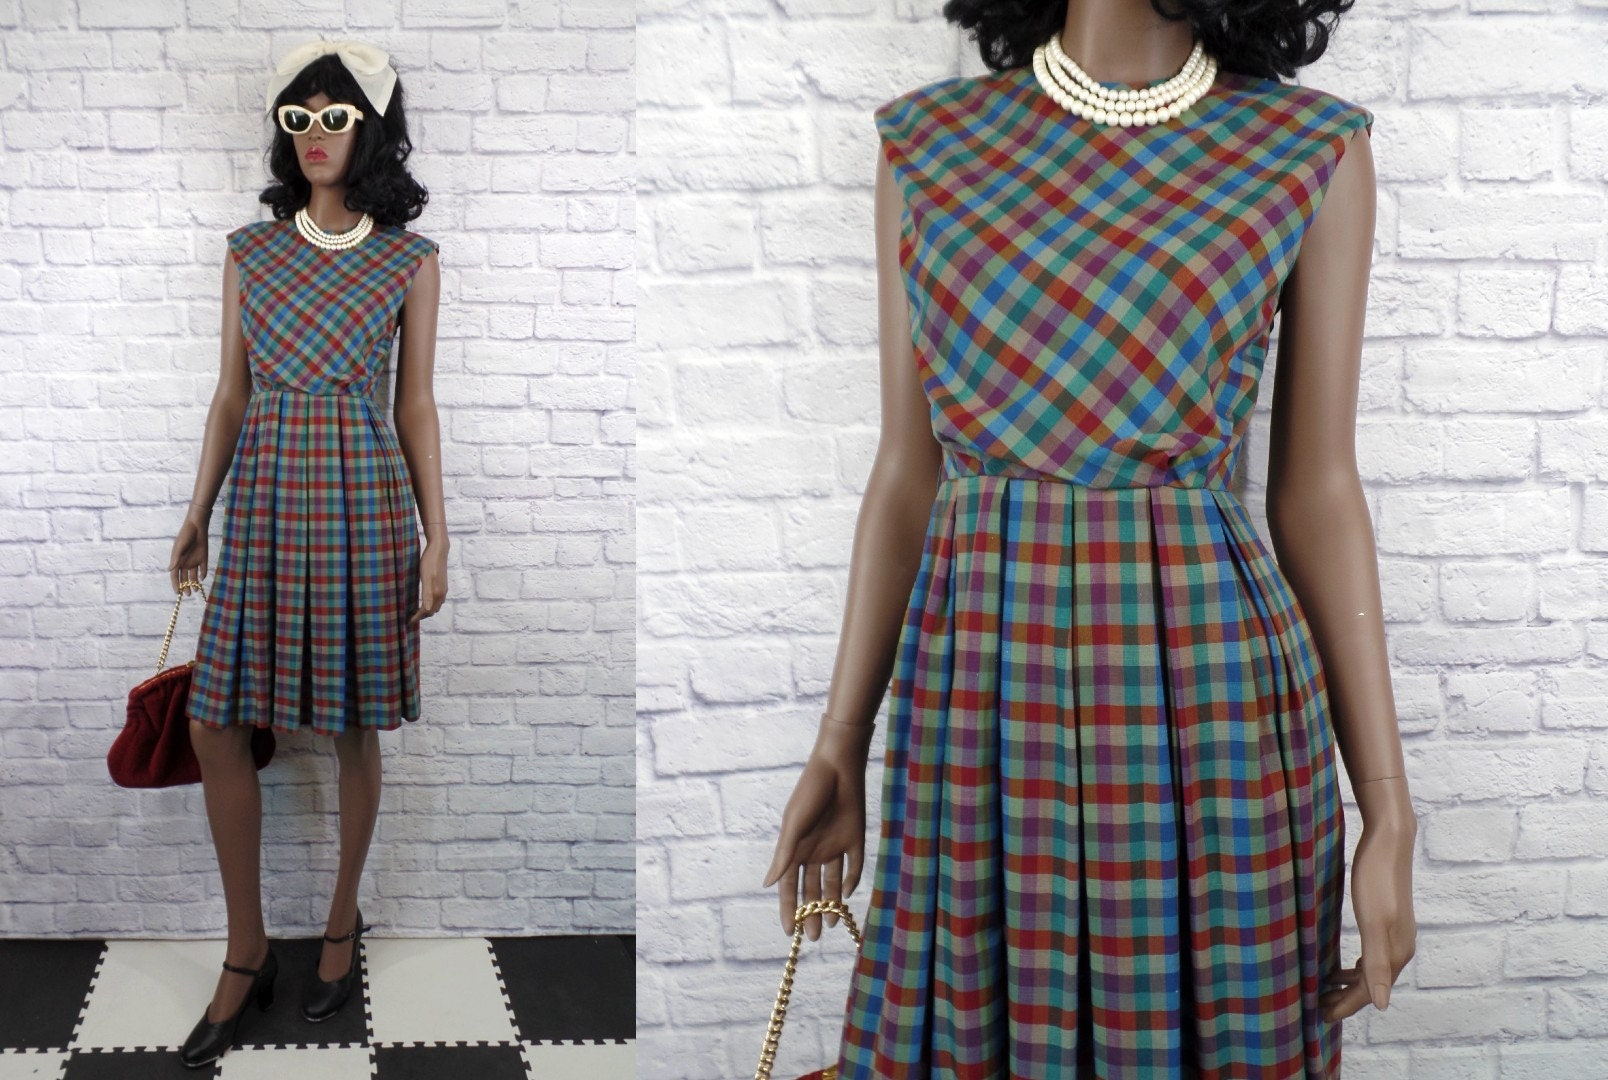 60s -70s Jewelry – Necklaces, Earrings, Rings, Bracelets Vintage 1960S Sleeveless Cotton Rainbow Plaid Day Dress - Small Bin D-05 $19.00 AT vintagedancer.com